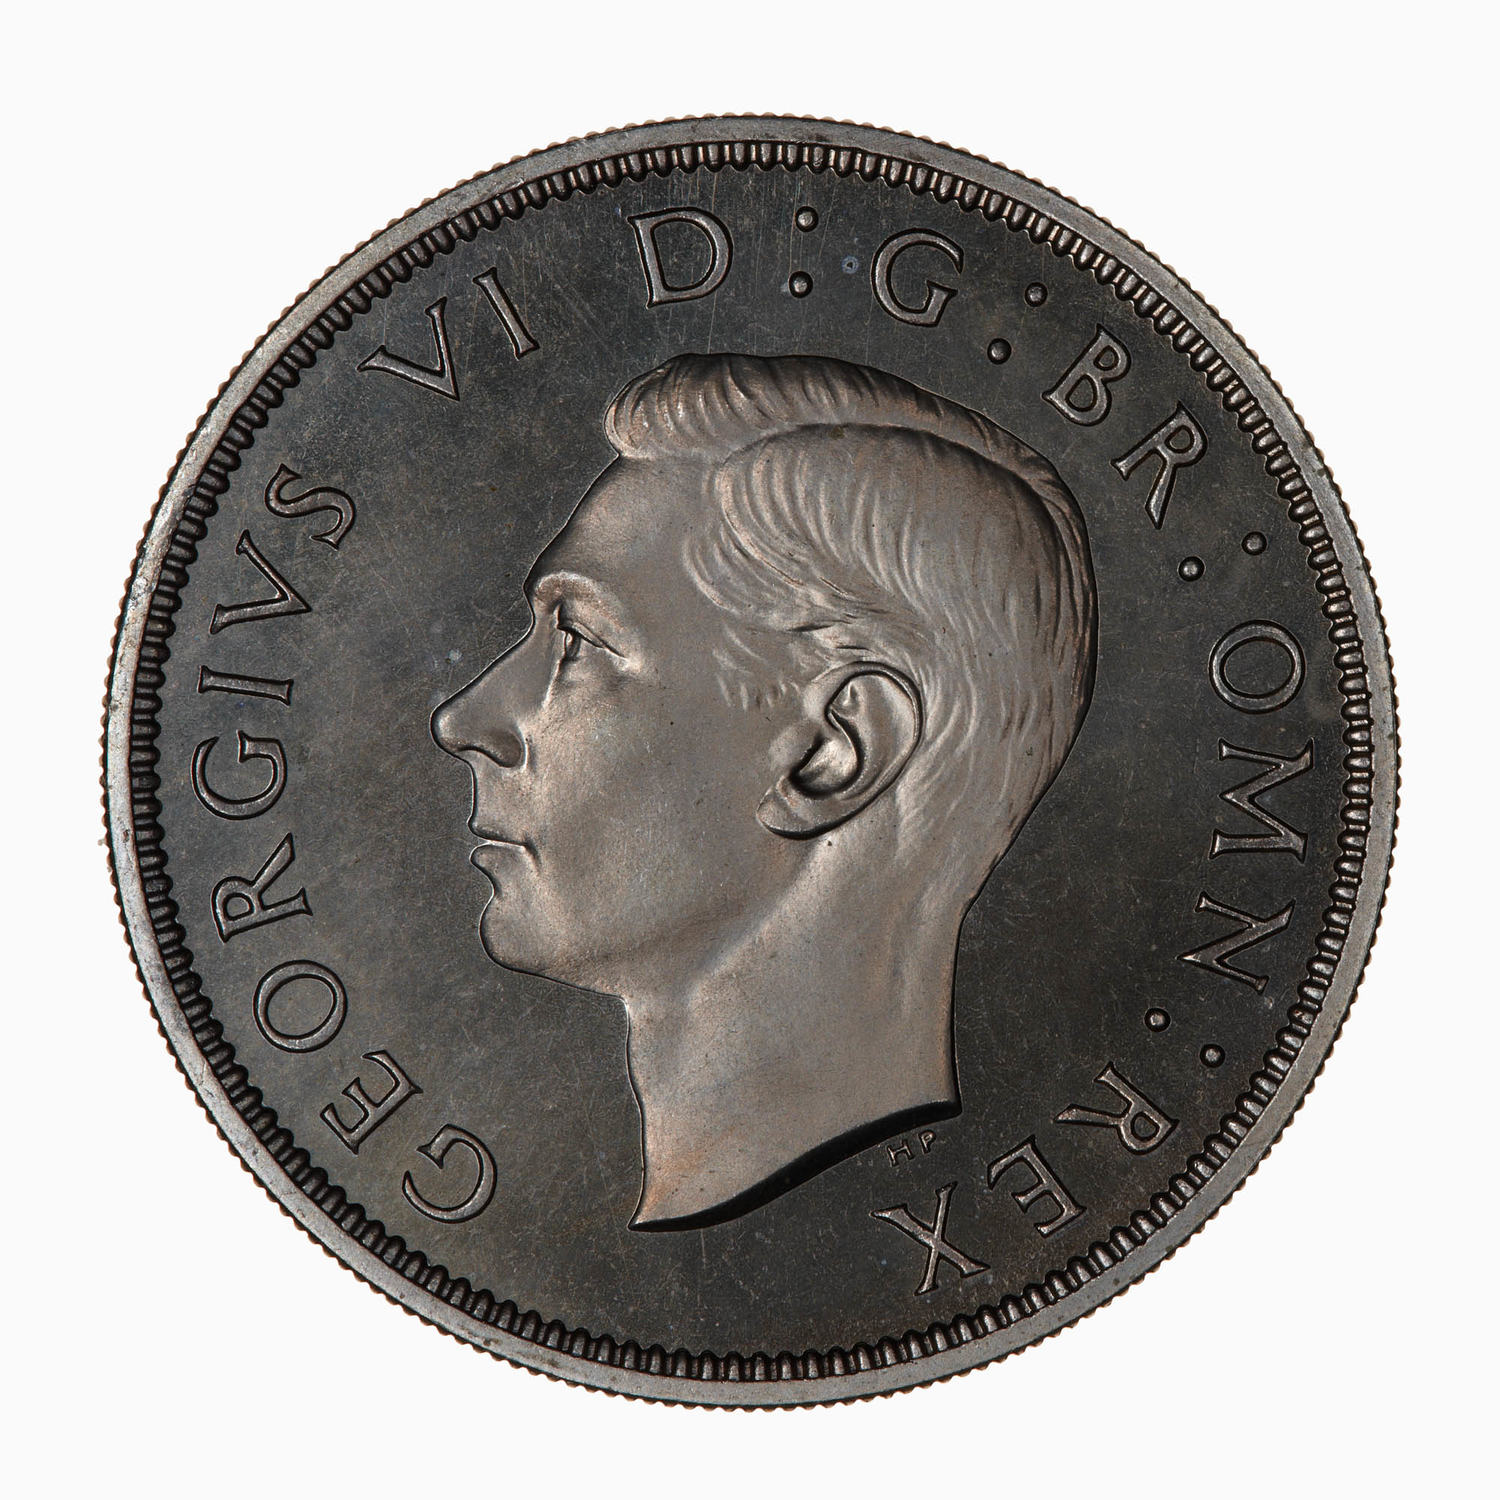 Florin George VI (CuproNickel): Photo Proof Coin - Florin, George VI, Great Britain, 1947